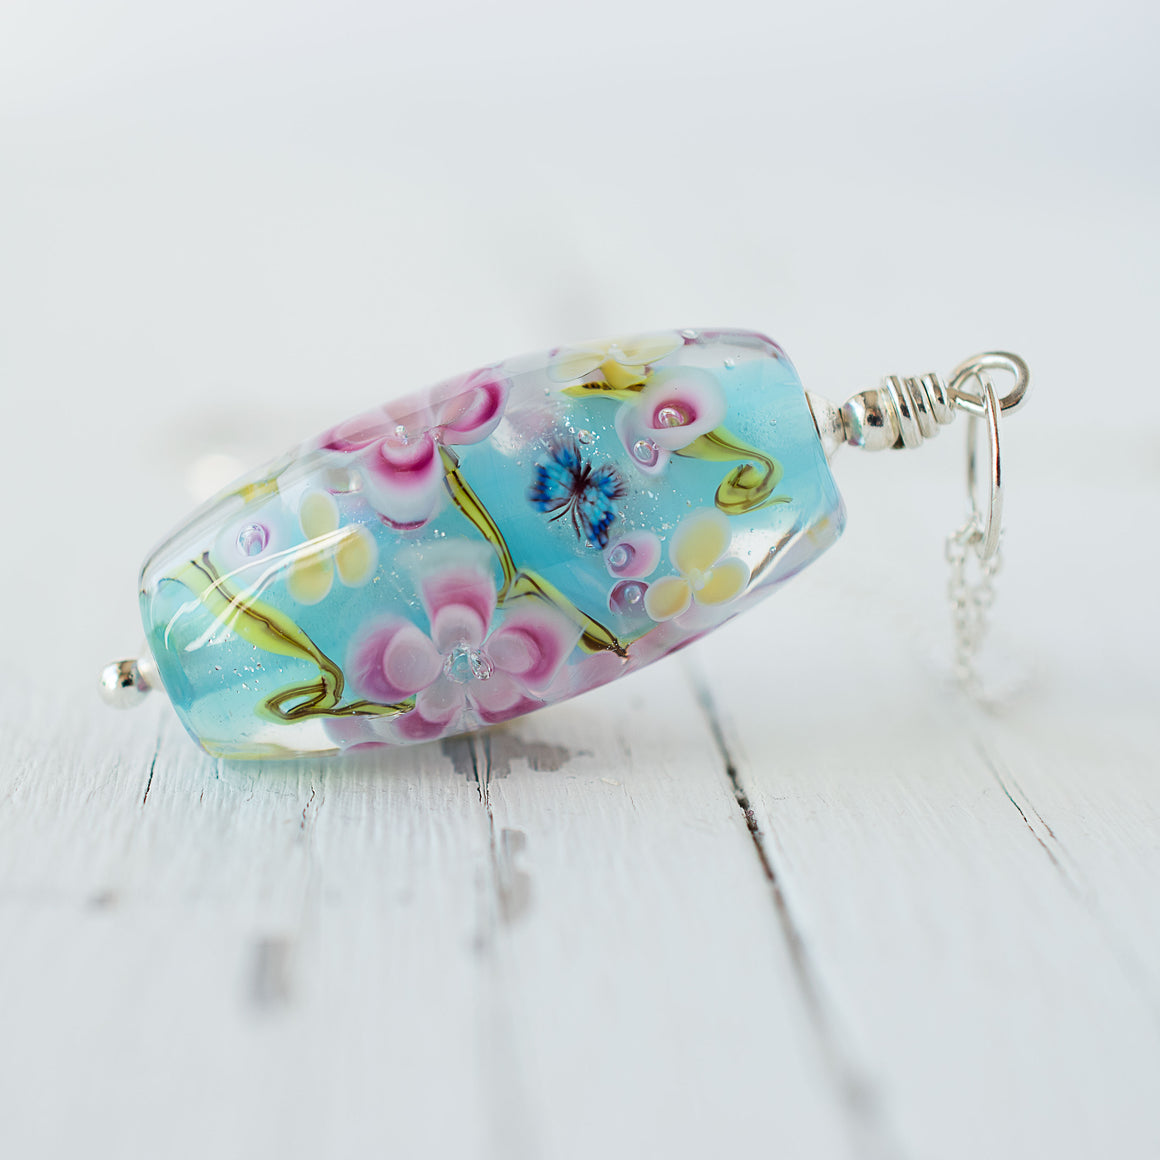 Summer - Blossom Butterfly Necklace in Turquoise